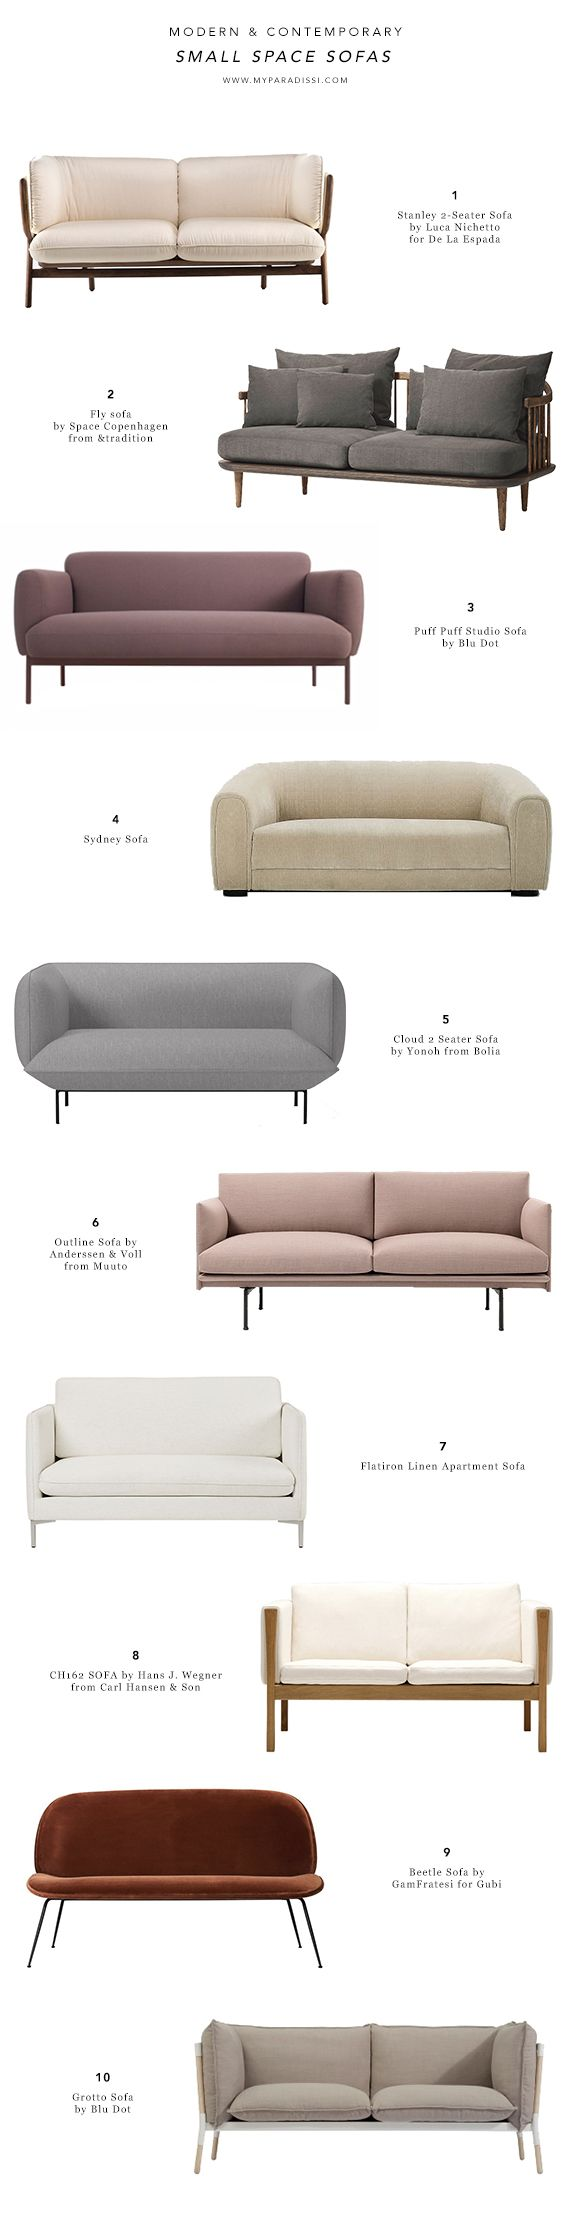 10 BEST: Contemporary small space sofas | Objects | Sofas for small ...